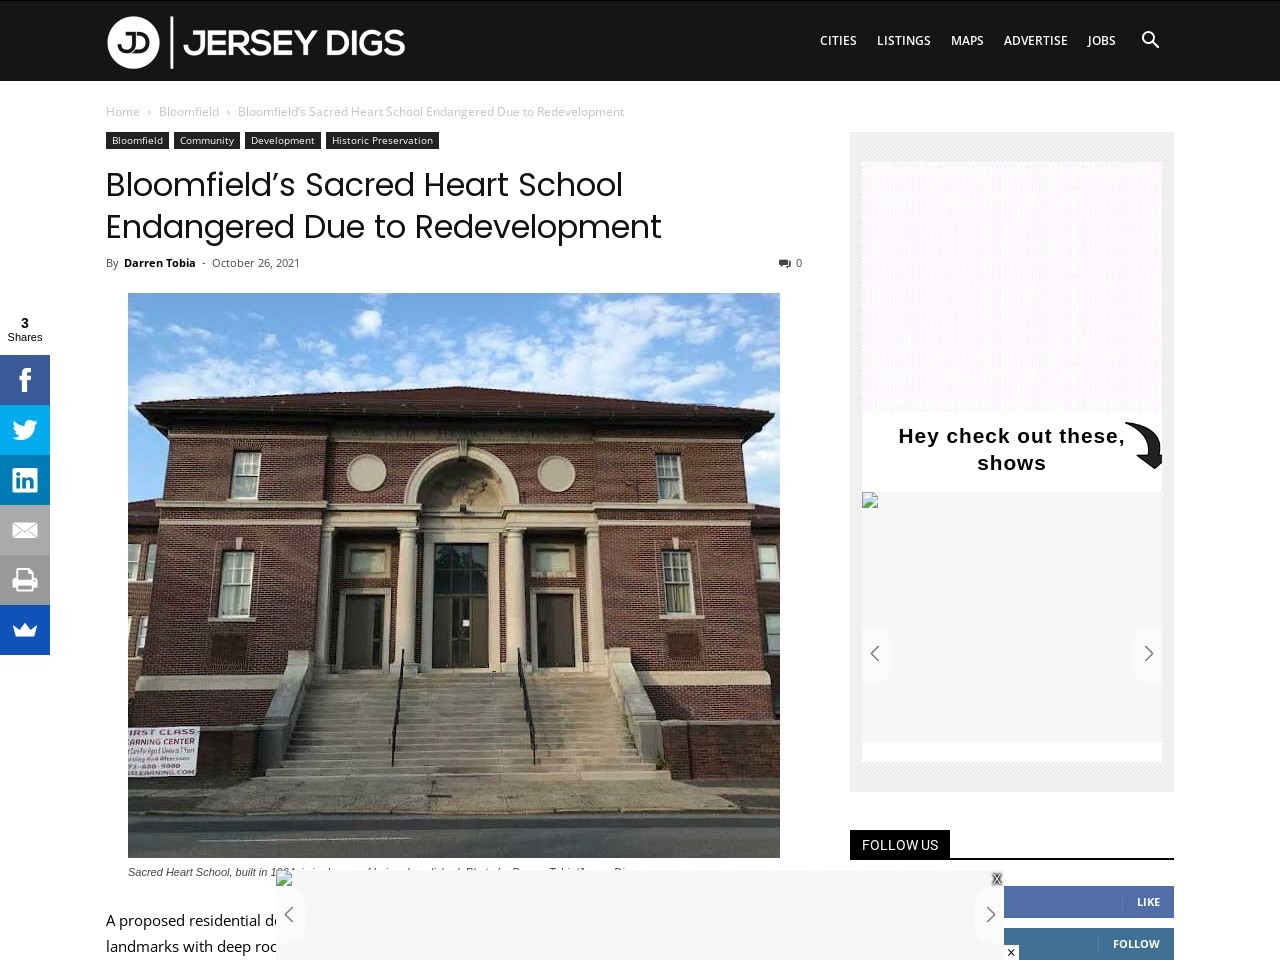 Bloomfield's Sacred Heart School Endangered Due to Redevelopment